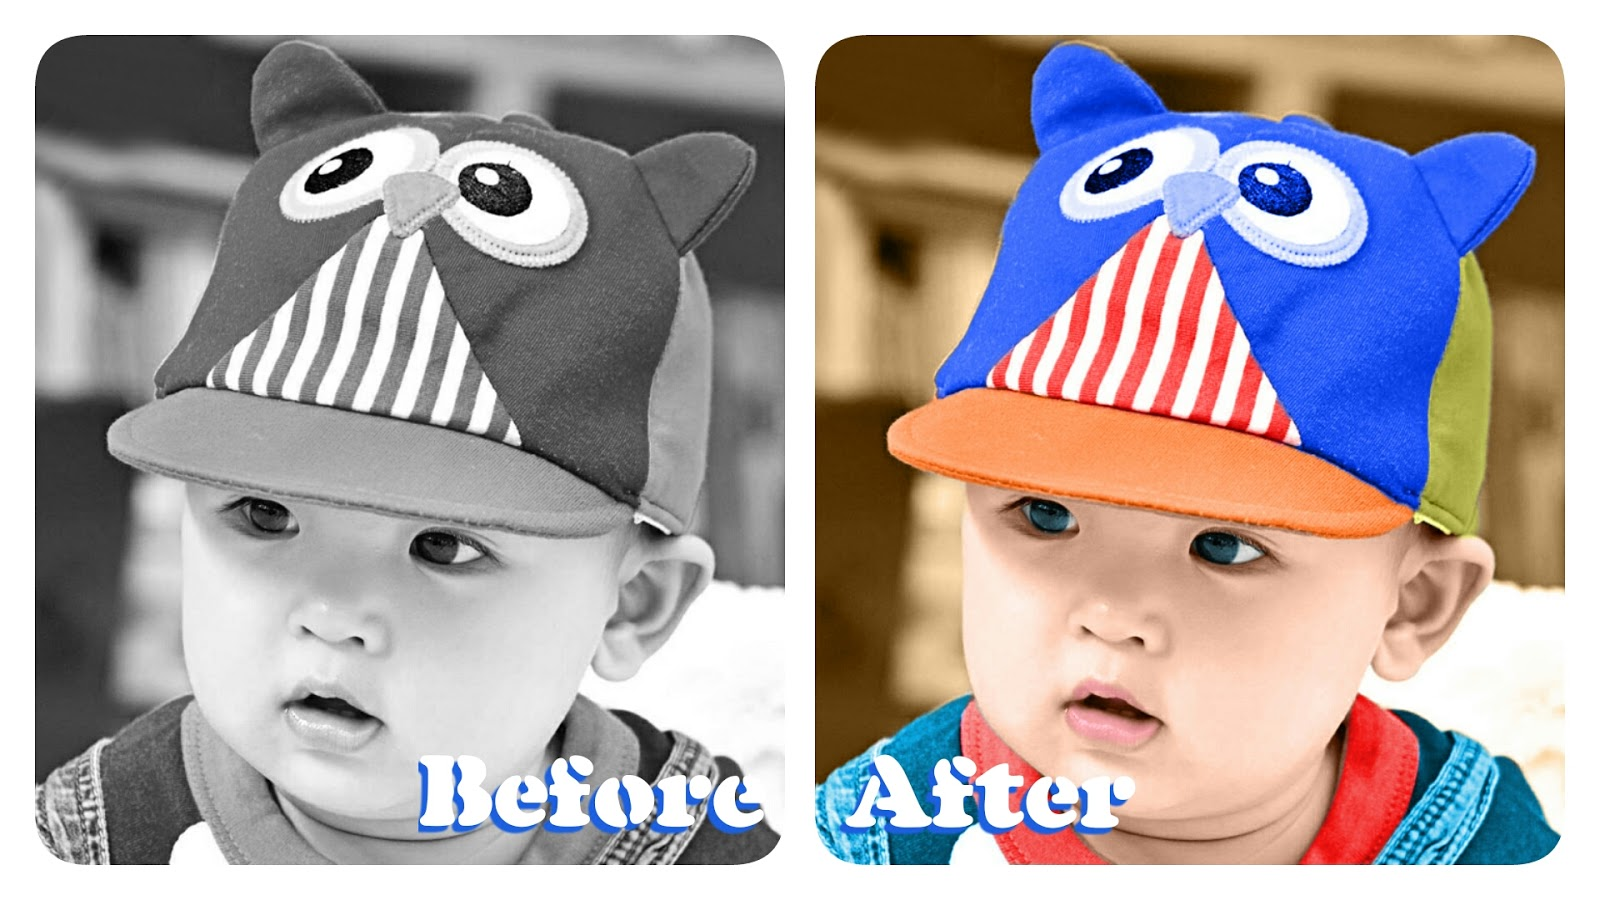 How to convert black and white photo to color photo easily colorize a black and white photo in photoshop there are so many ways to colorize the old black